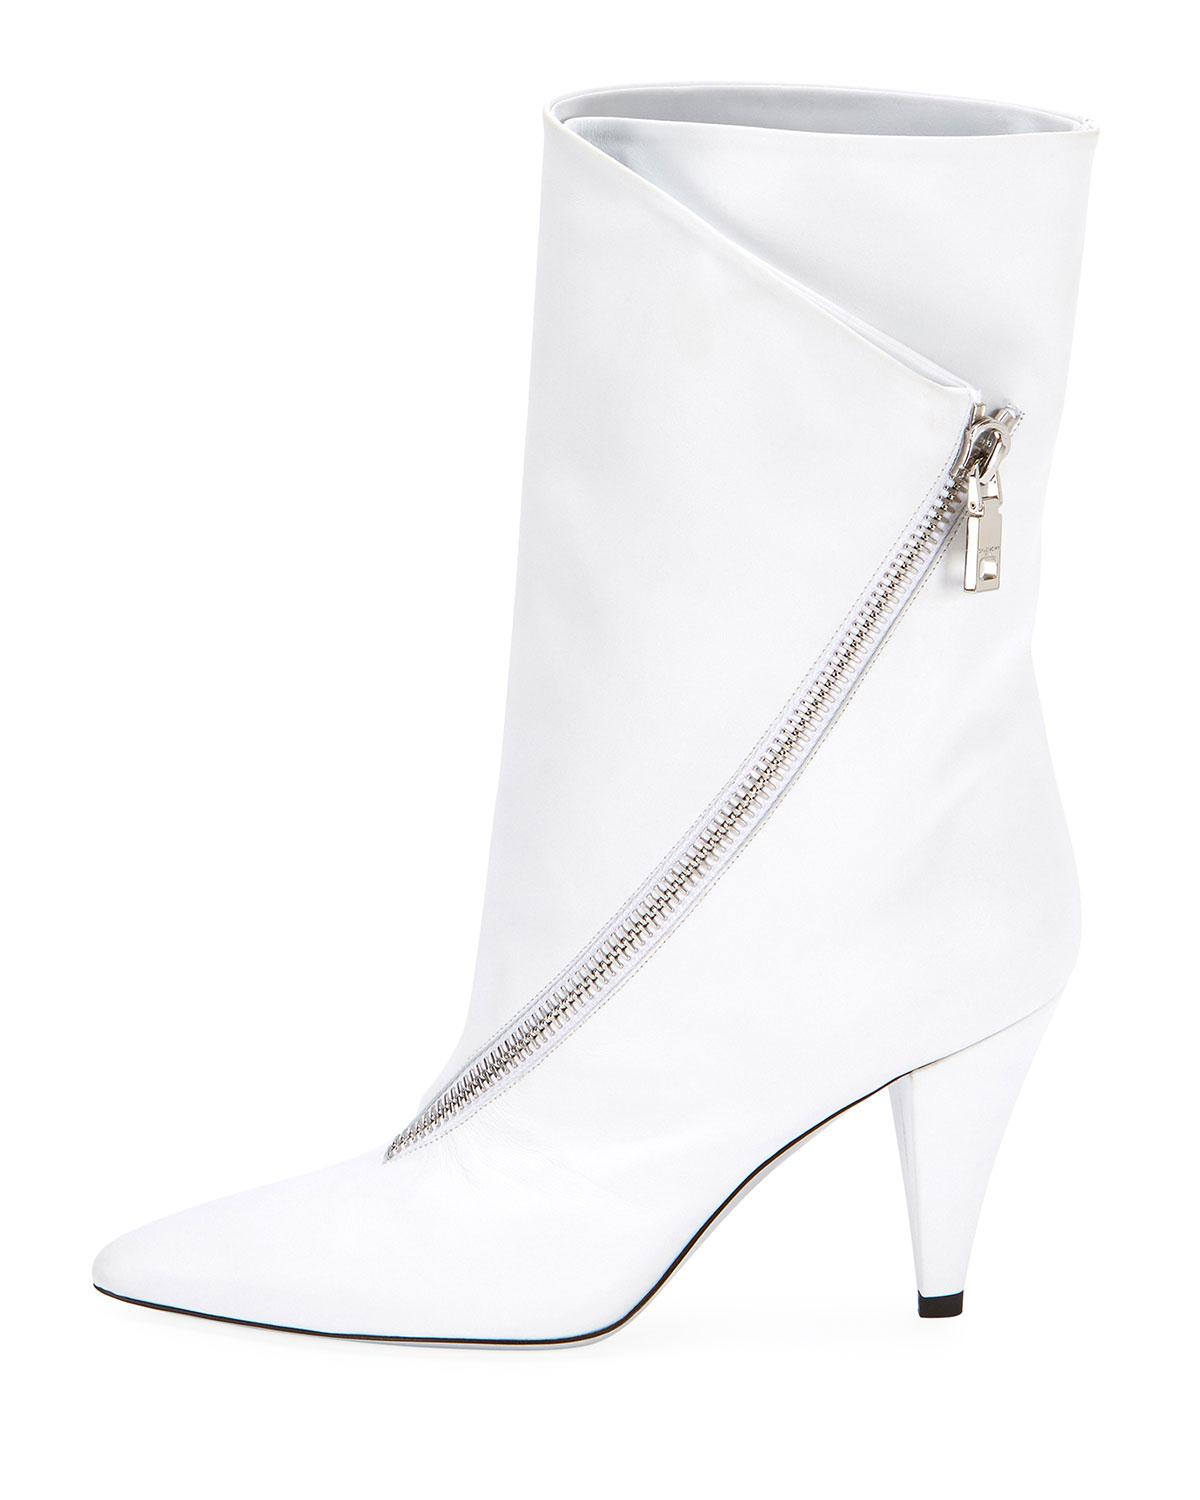 1bdca8019e7a Lyst - Givenchy Show Asymmetric-zip 80mm Boots in White